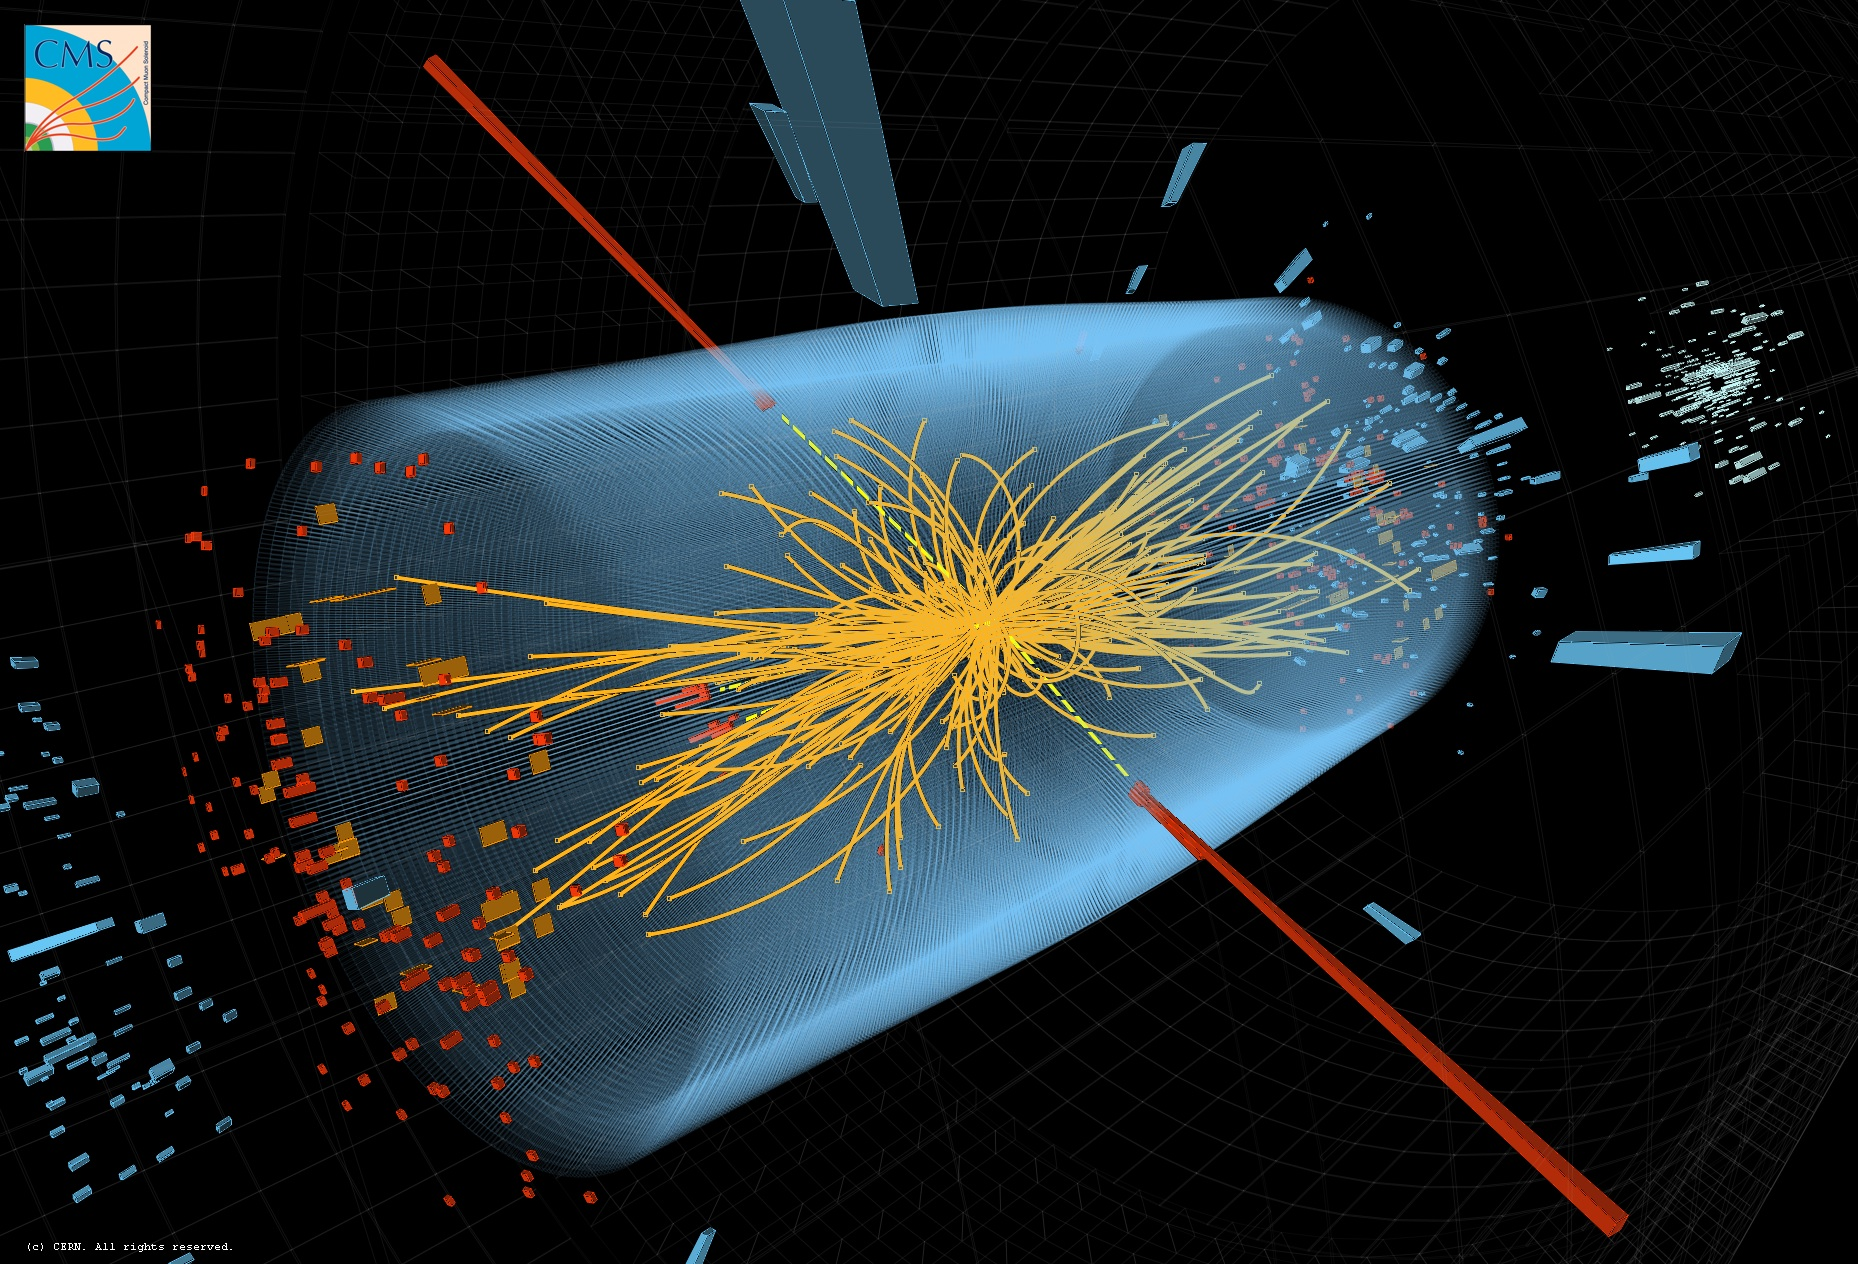 Loose Cable Explains Faulty 'Faster-than-light' Neutrino Result